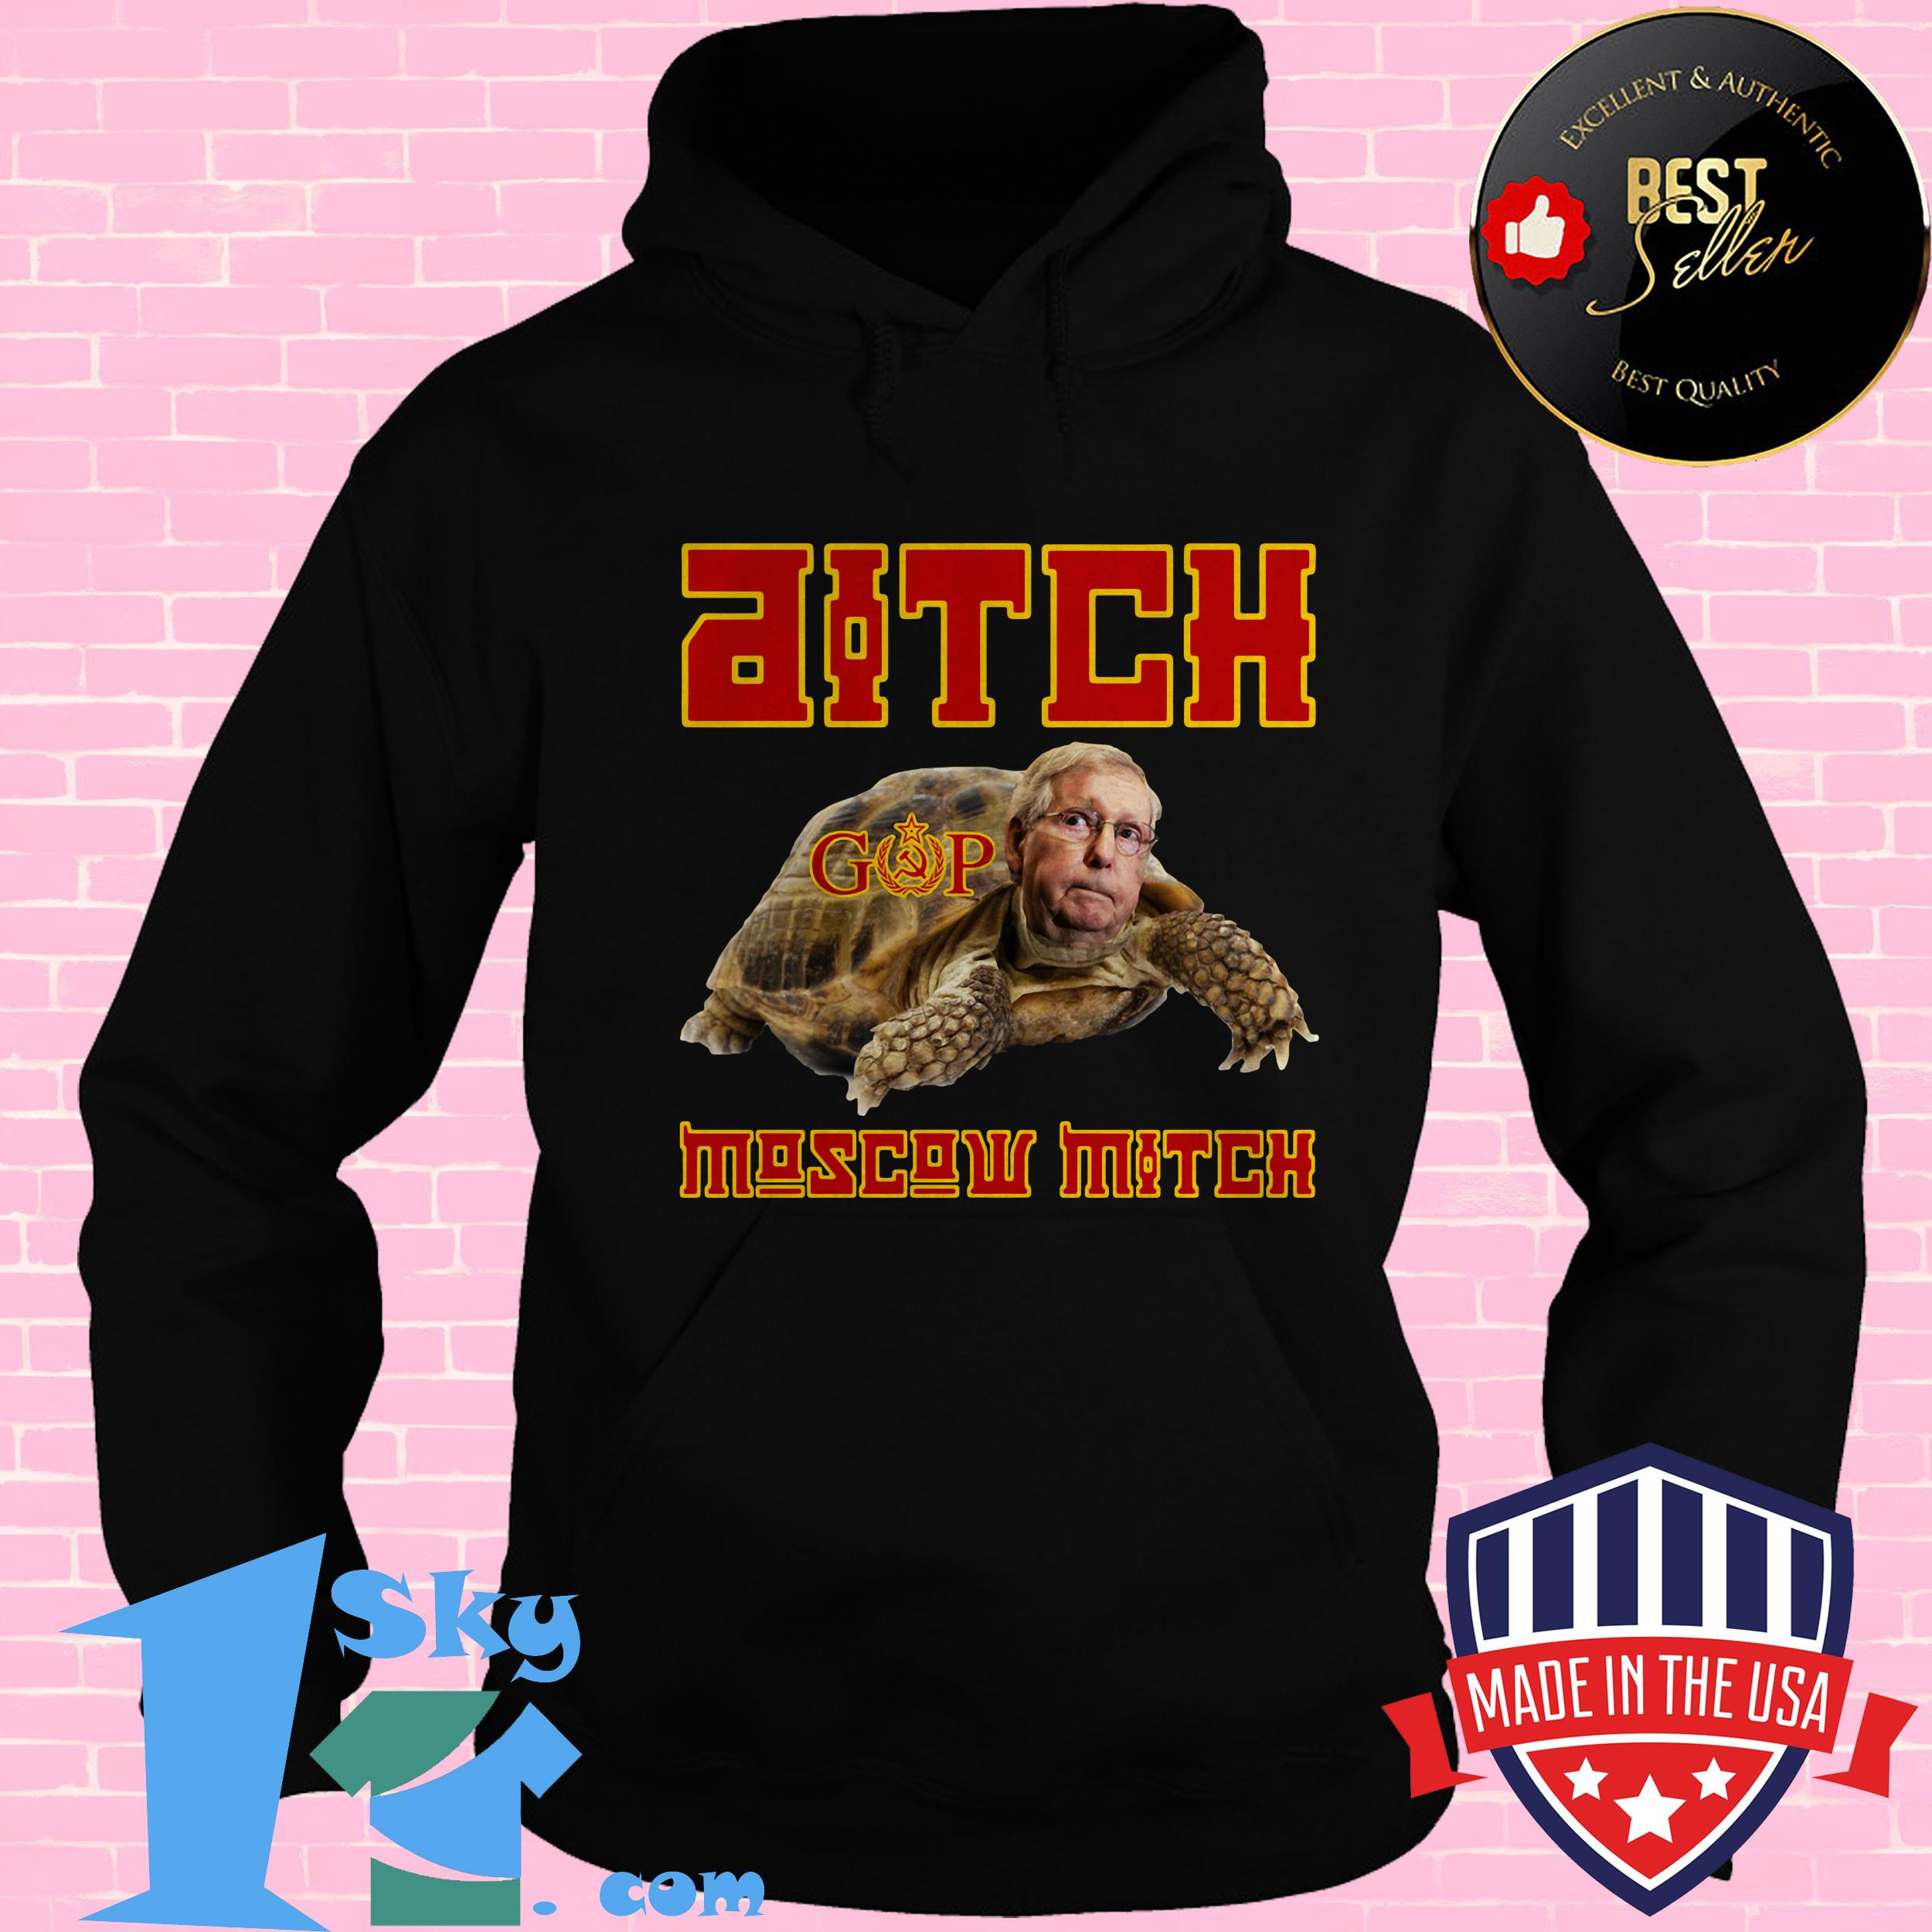 ditch moscow mitch red menace edition hoodie - Ditch Moscow Mitch - Red Menace Edition shirt